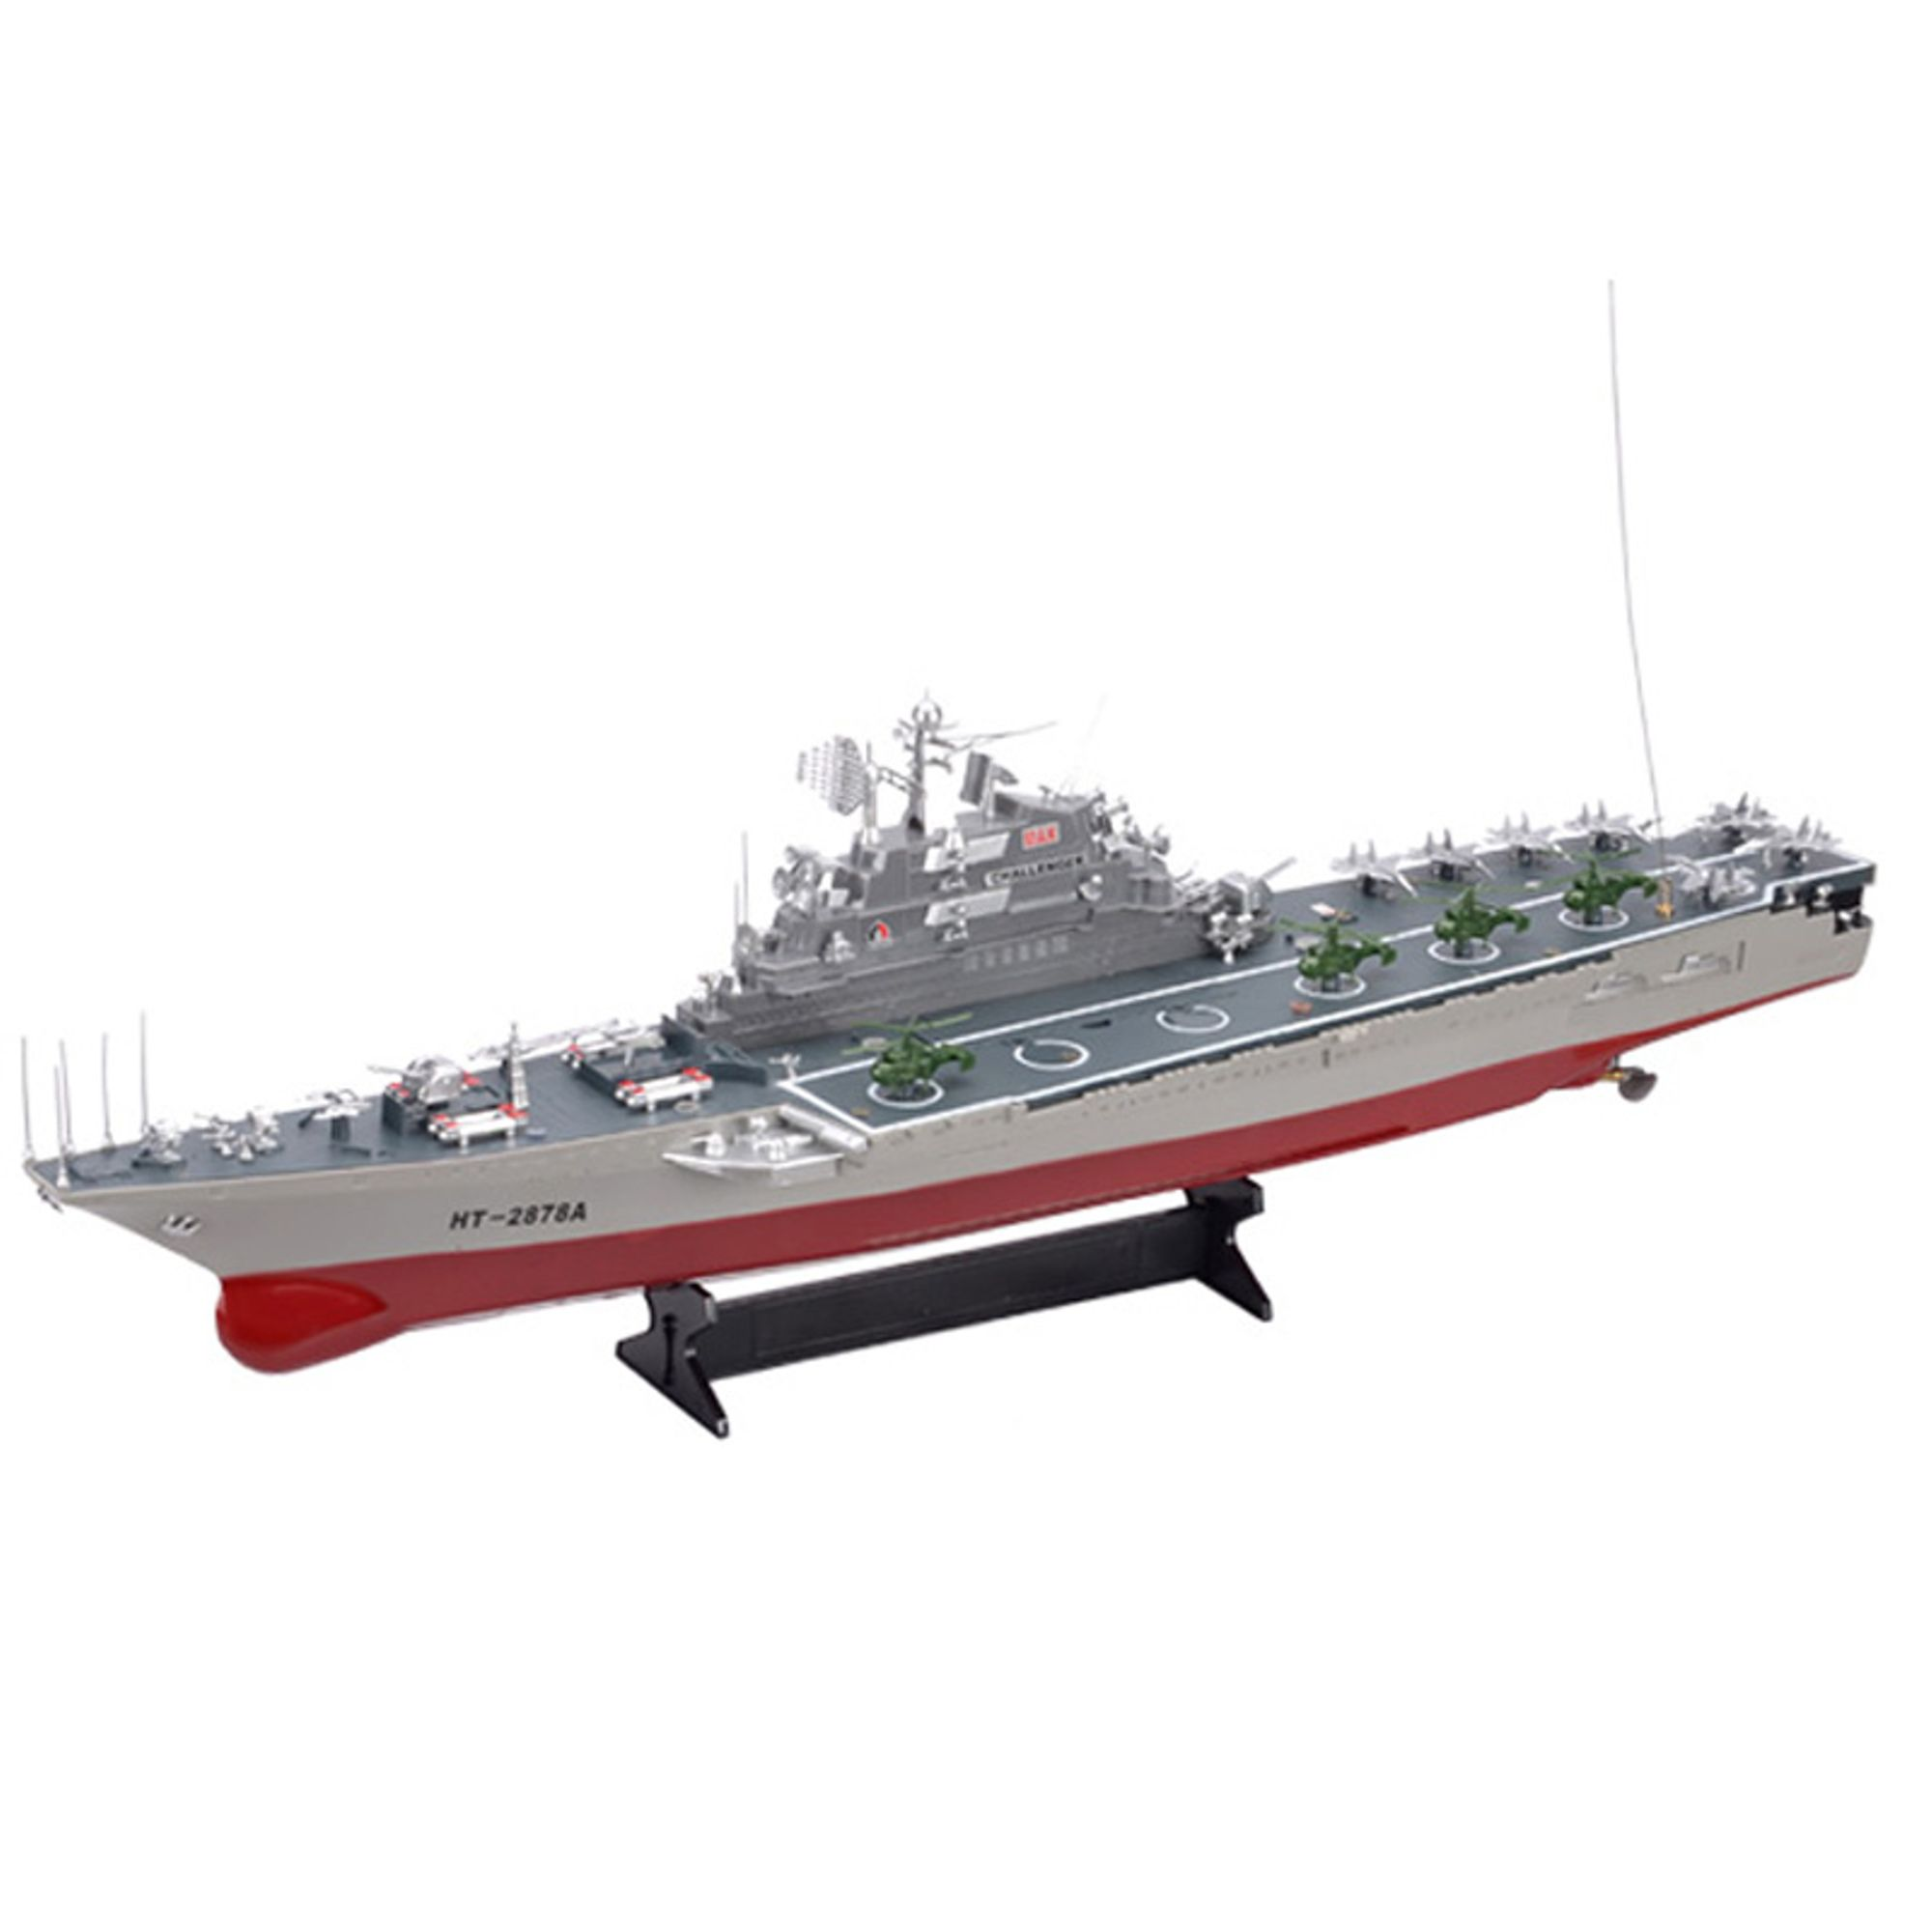 "30"" HT-2878 R C Large Warship Military Battleship Challenger Boat with Two Very Fast Motors Radio... by"